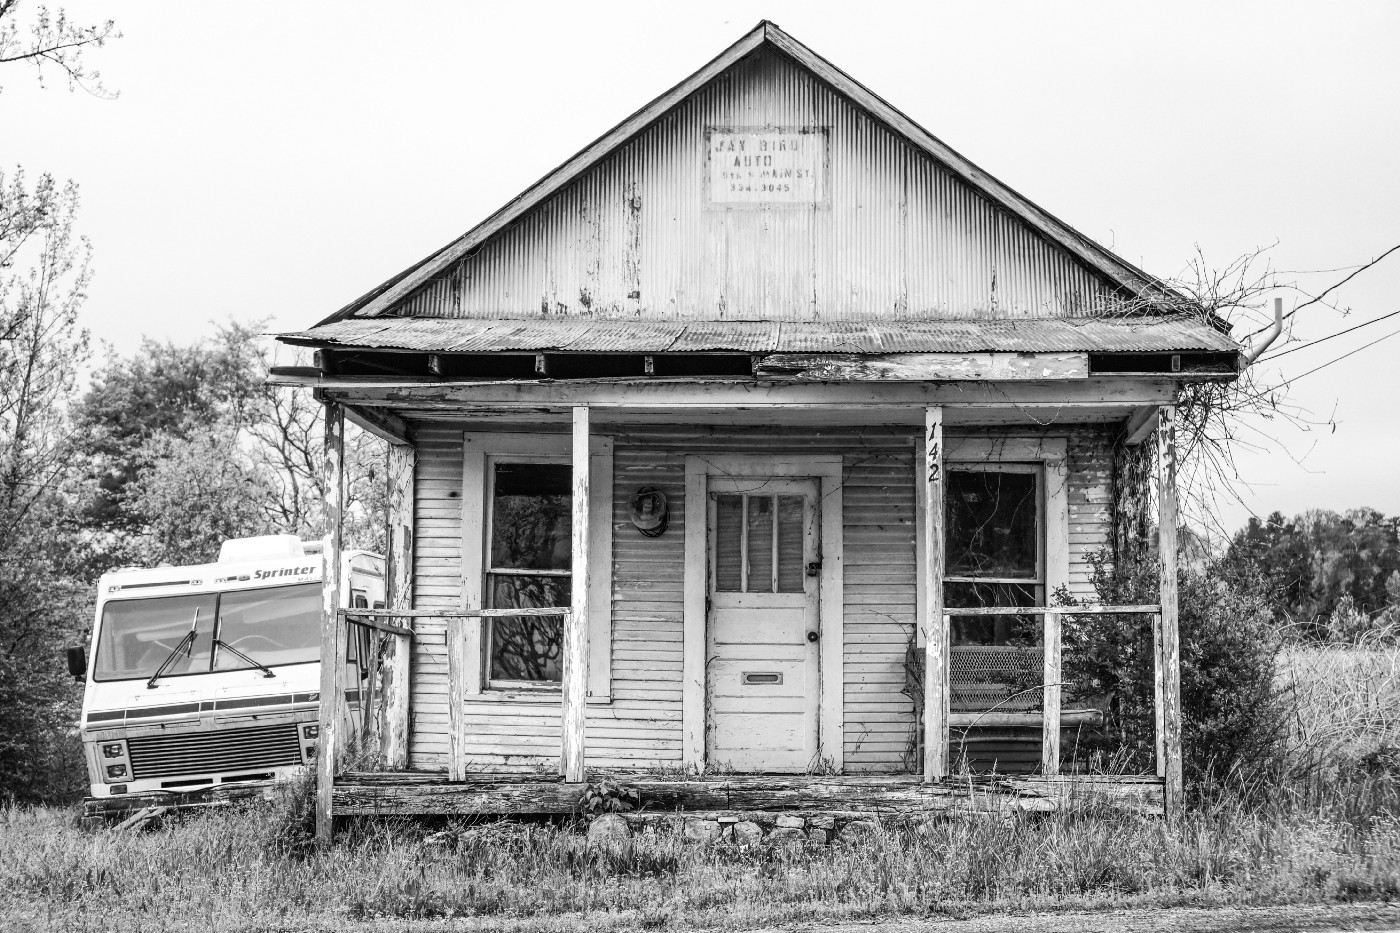 Old abandoned home black and with parked RV.